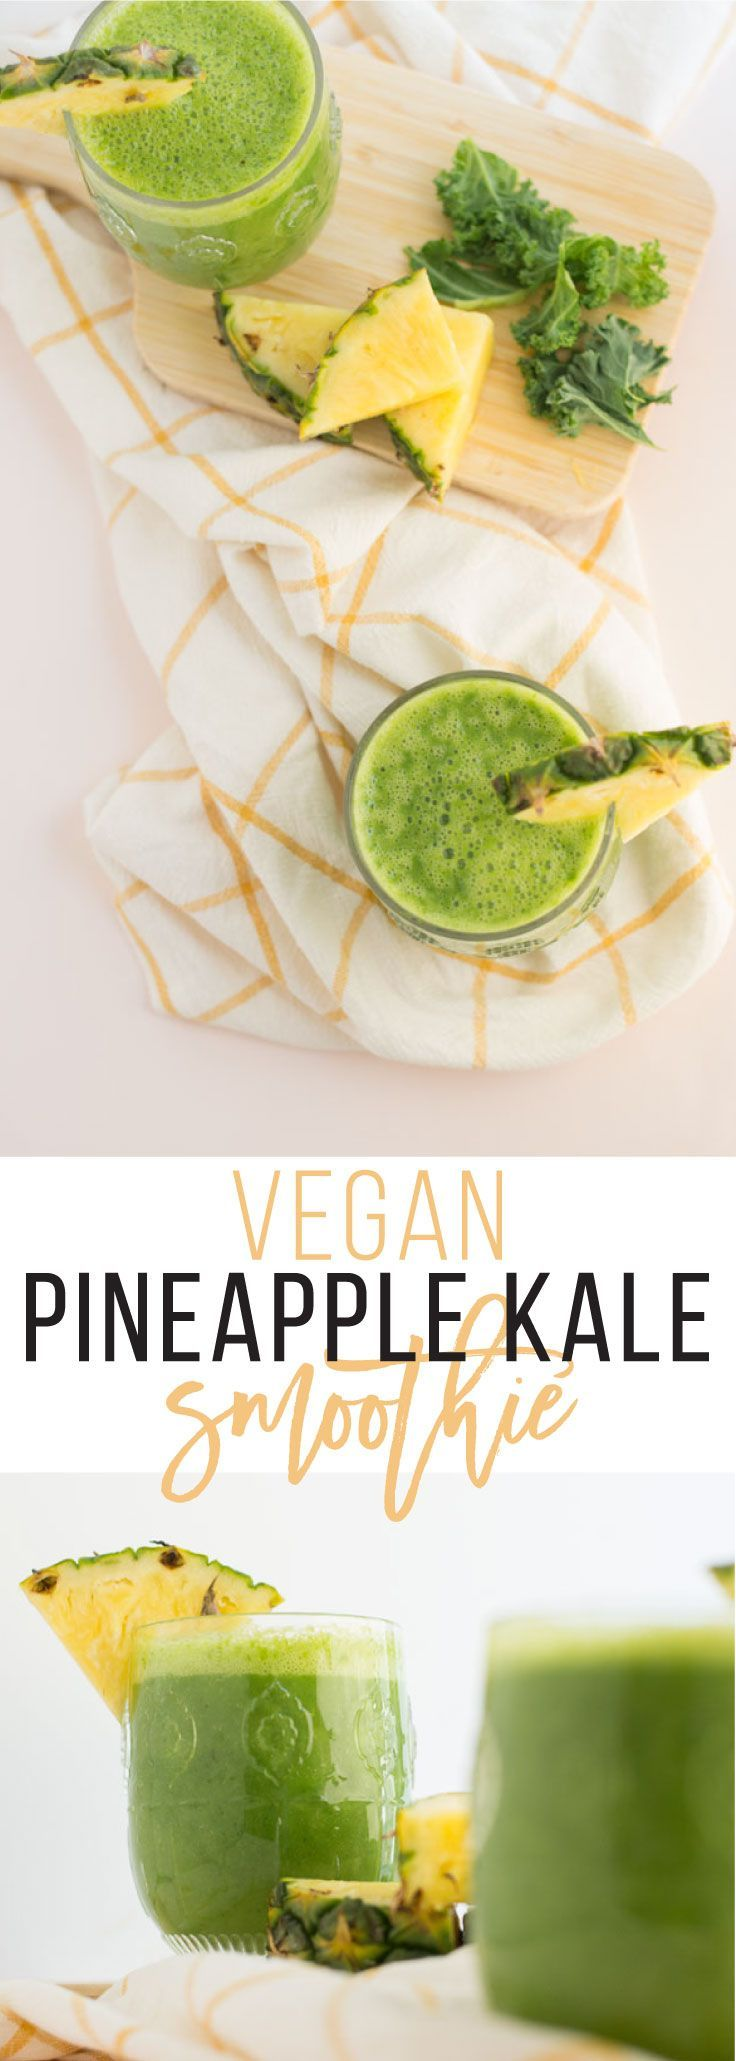 Vegan Pineapple Kale Smoothie -- Whip up this quick and healthy smoothie recipe with only FOUR ingredients! Perfect way to get a taste of the tropics AND your fruit and veggie intake! Pineapple Kale Smoothie -- Whip up this quick and healthy smoothie recipe with only FOUR ingredients! Perfect way to get a taste of the tropics AND your fruit and veggie intake! | mindfulavocado